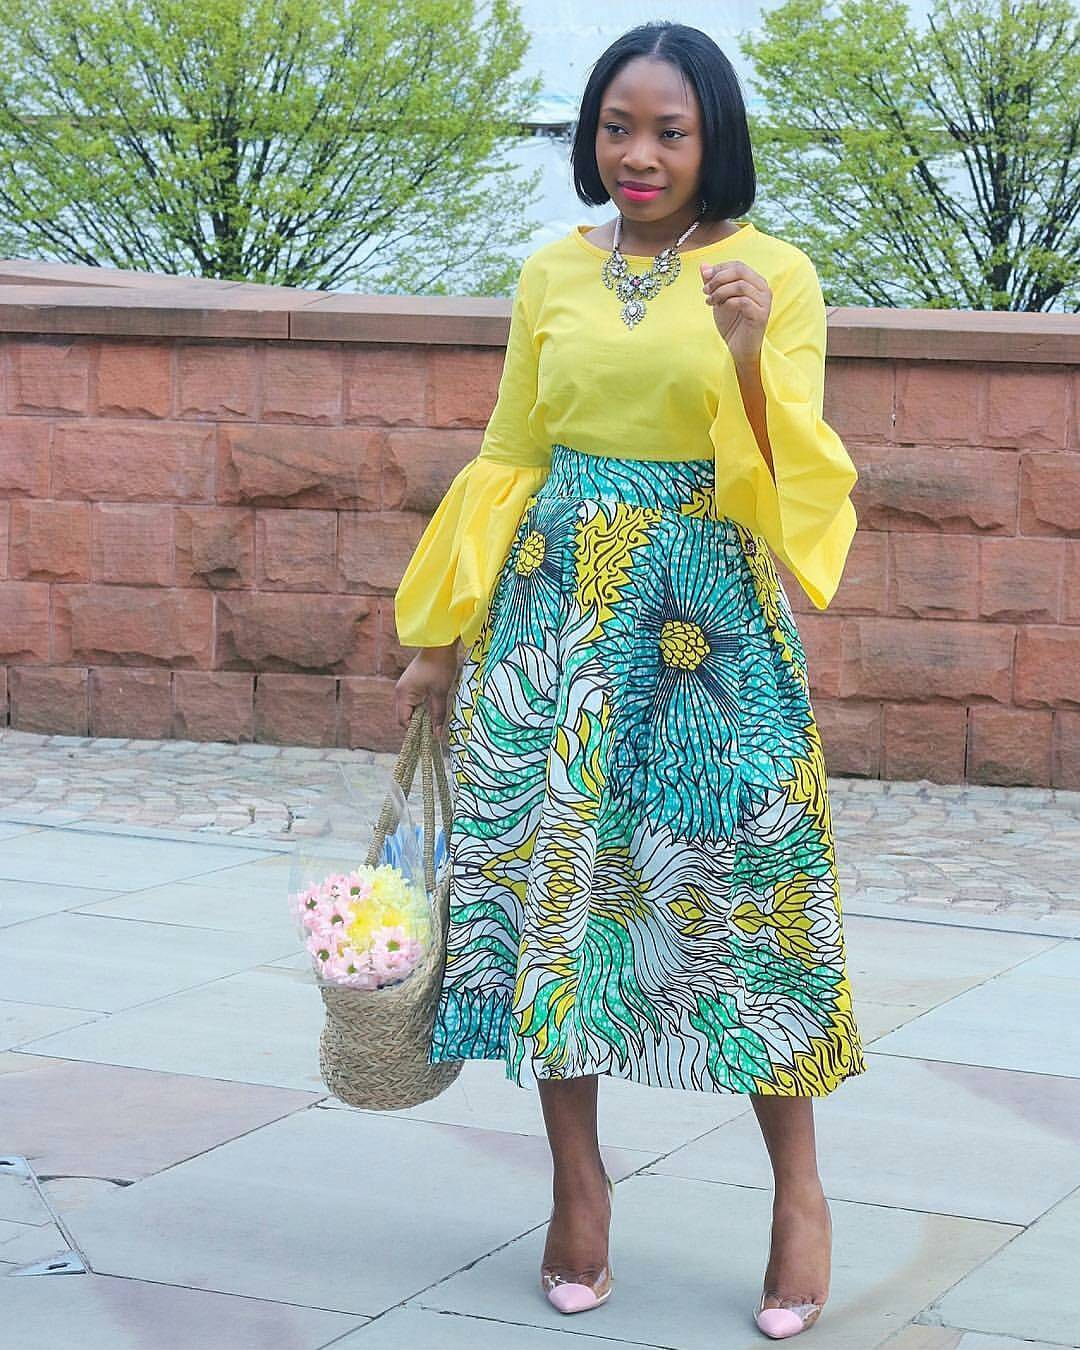 Latest Ankara Styles Instagram Feed Us Over The Weekend